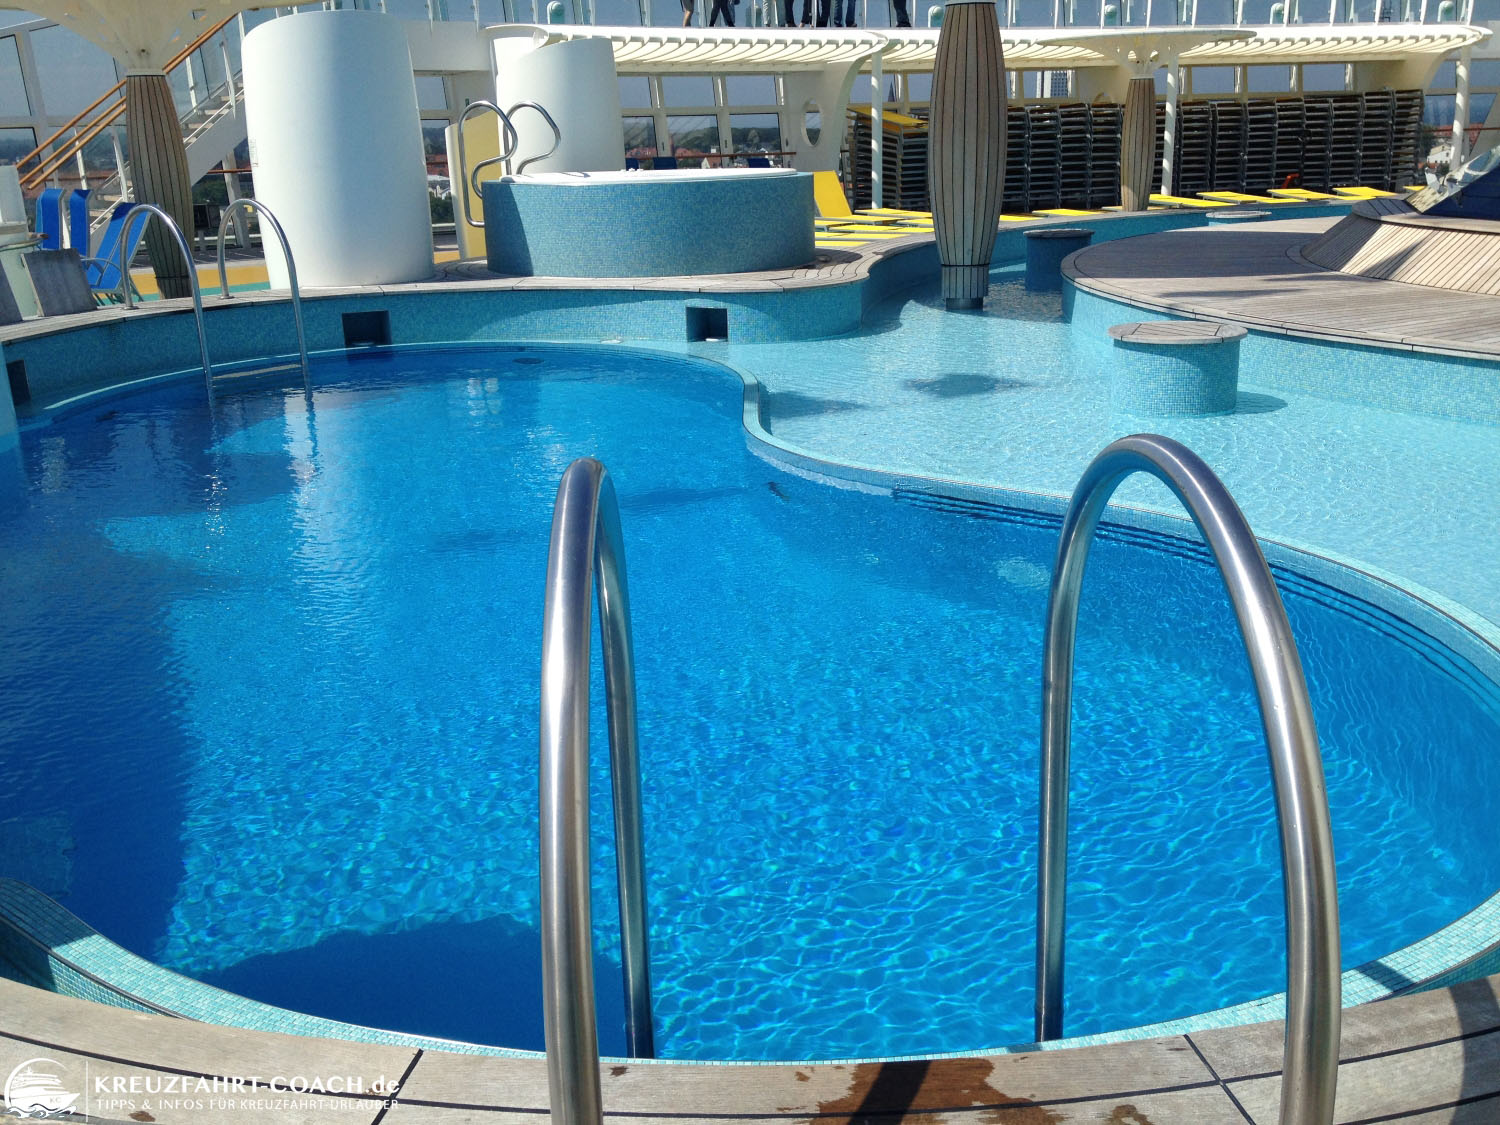 Pools auf dem Pooldeck